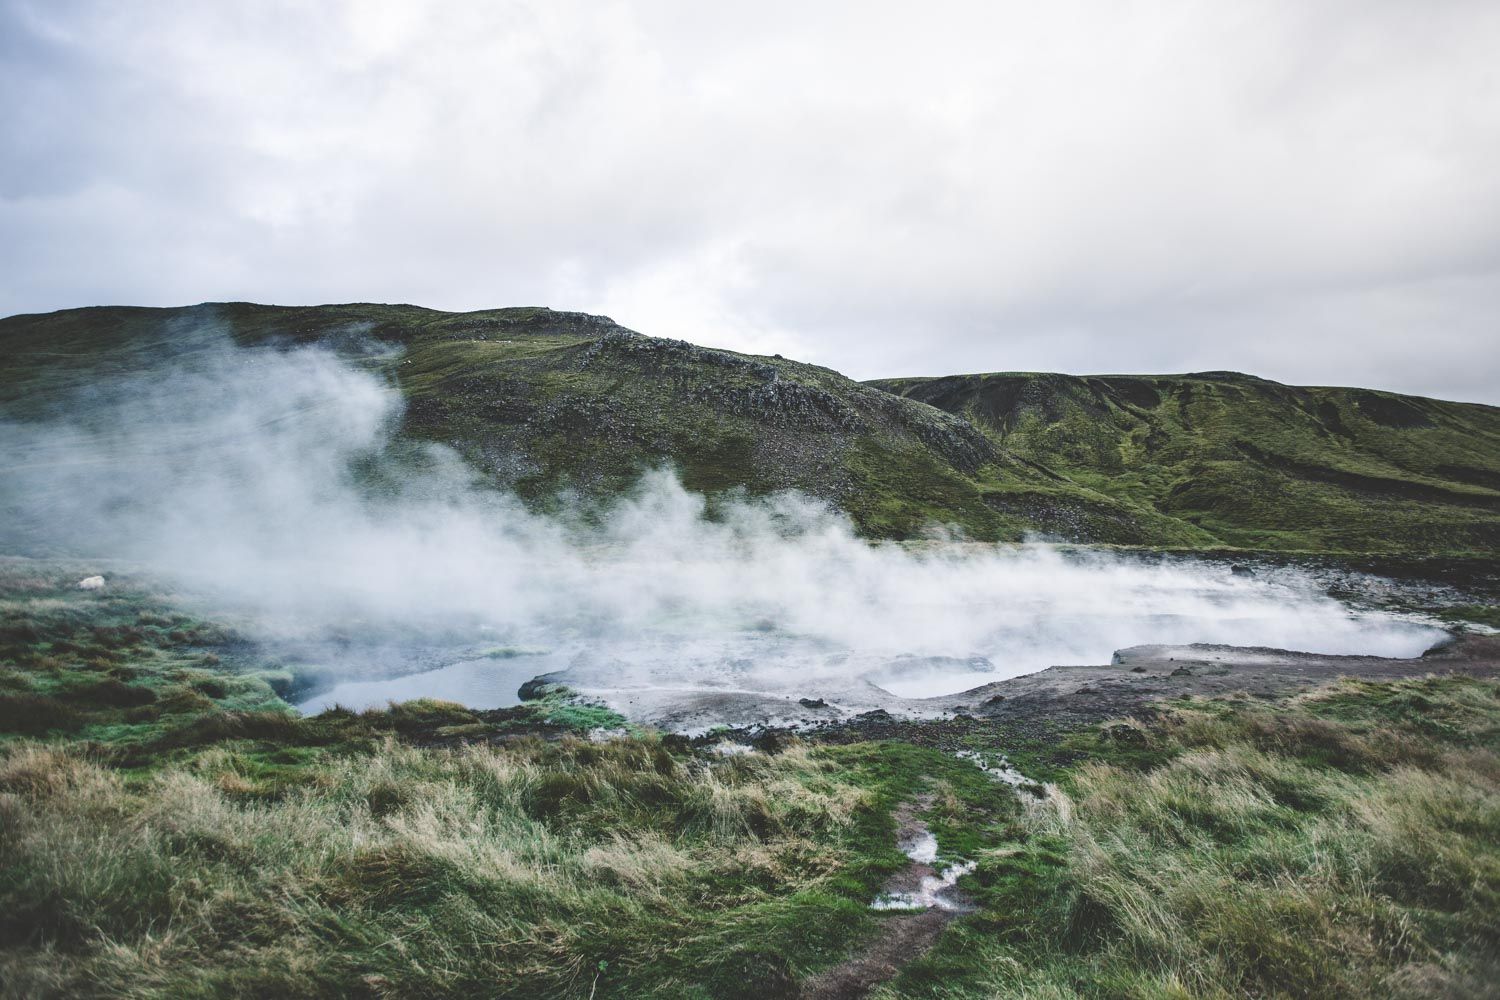 Hot springs - iceland 5 day itinerary